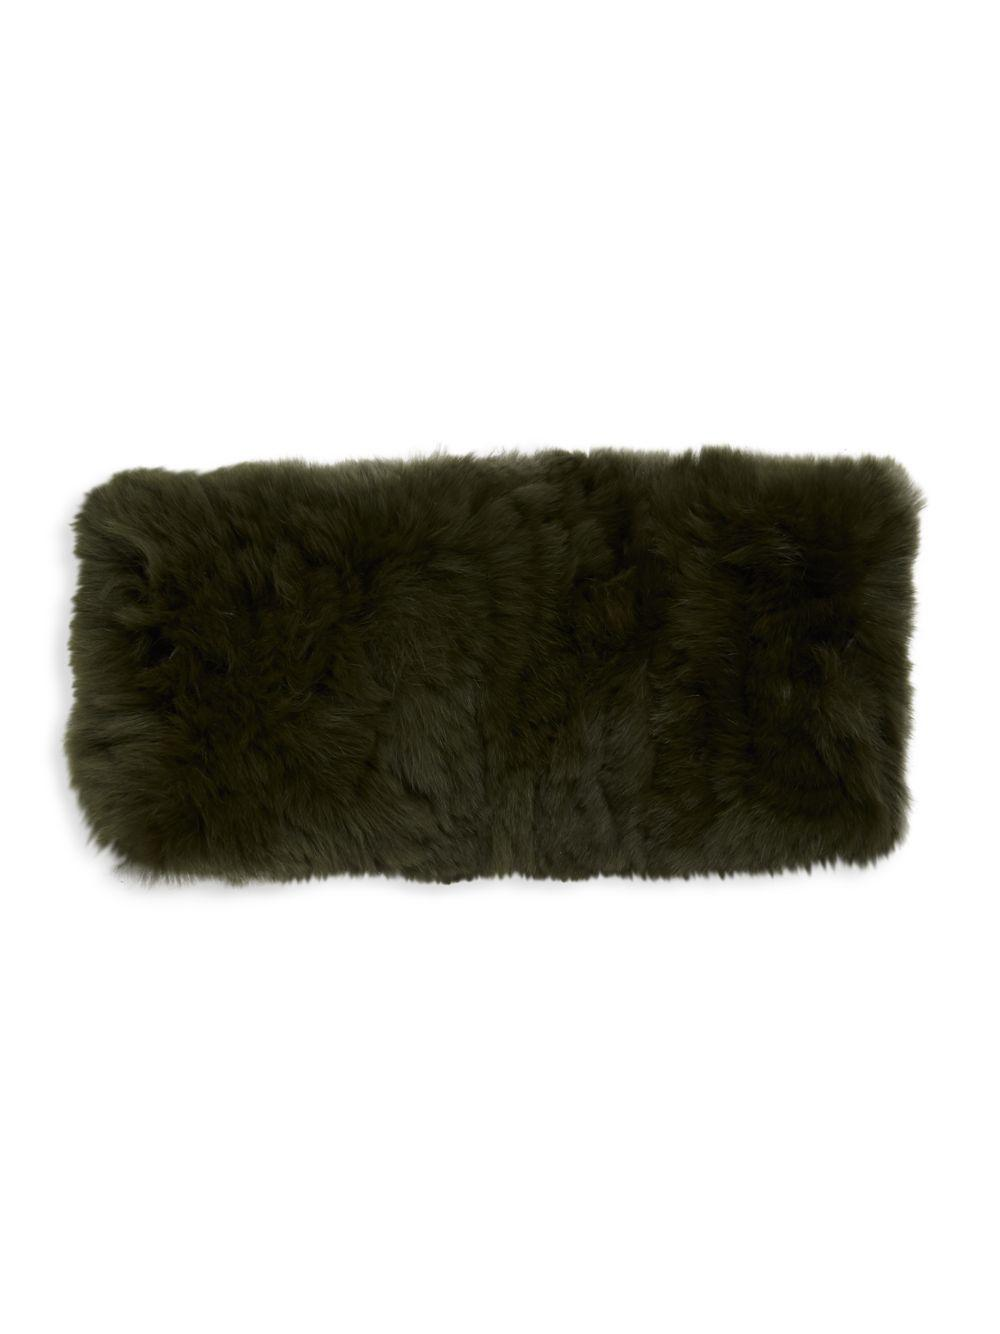 94603850989 Lyst - Saks Fifth Avenue Knitted Rabbit Fur Headband in Green